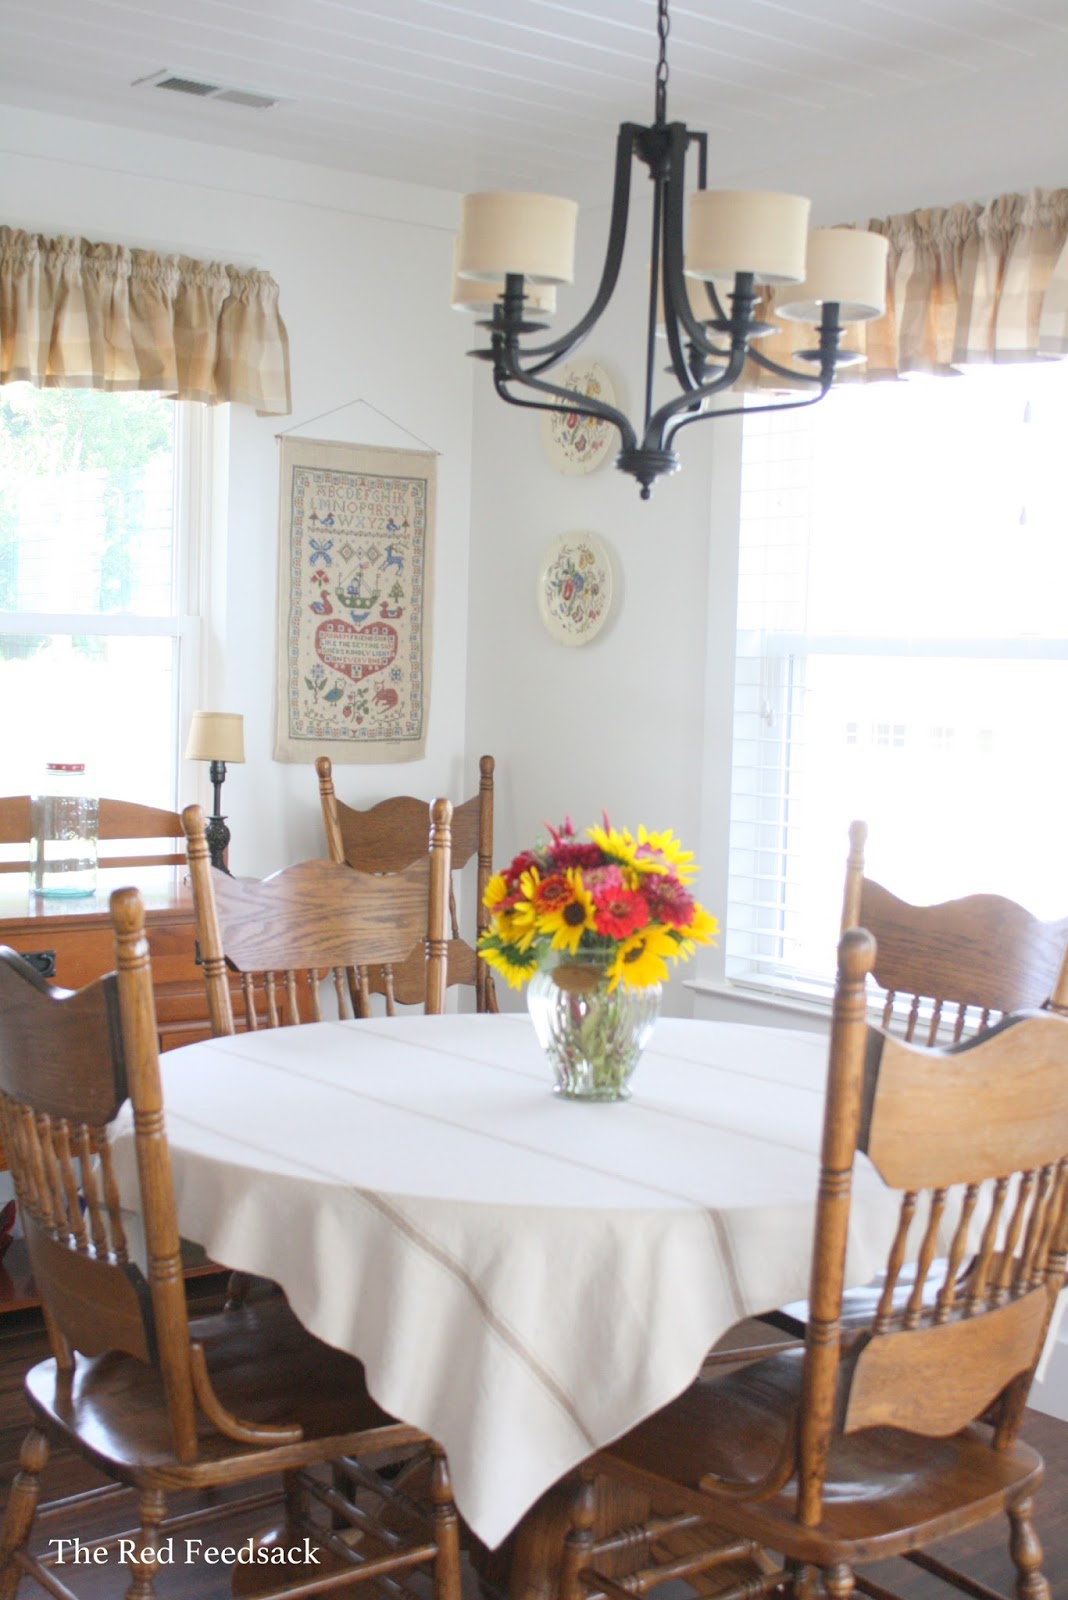 The Red Feedsack: A Farmhouse Tablecloth